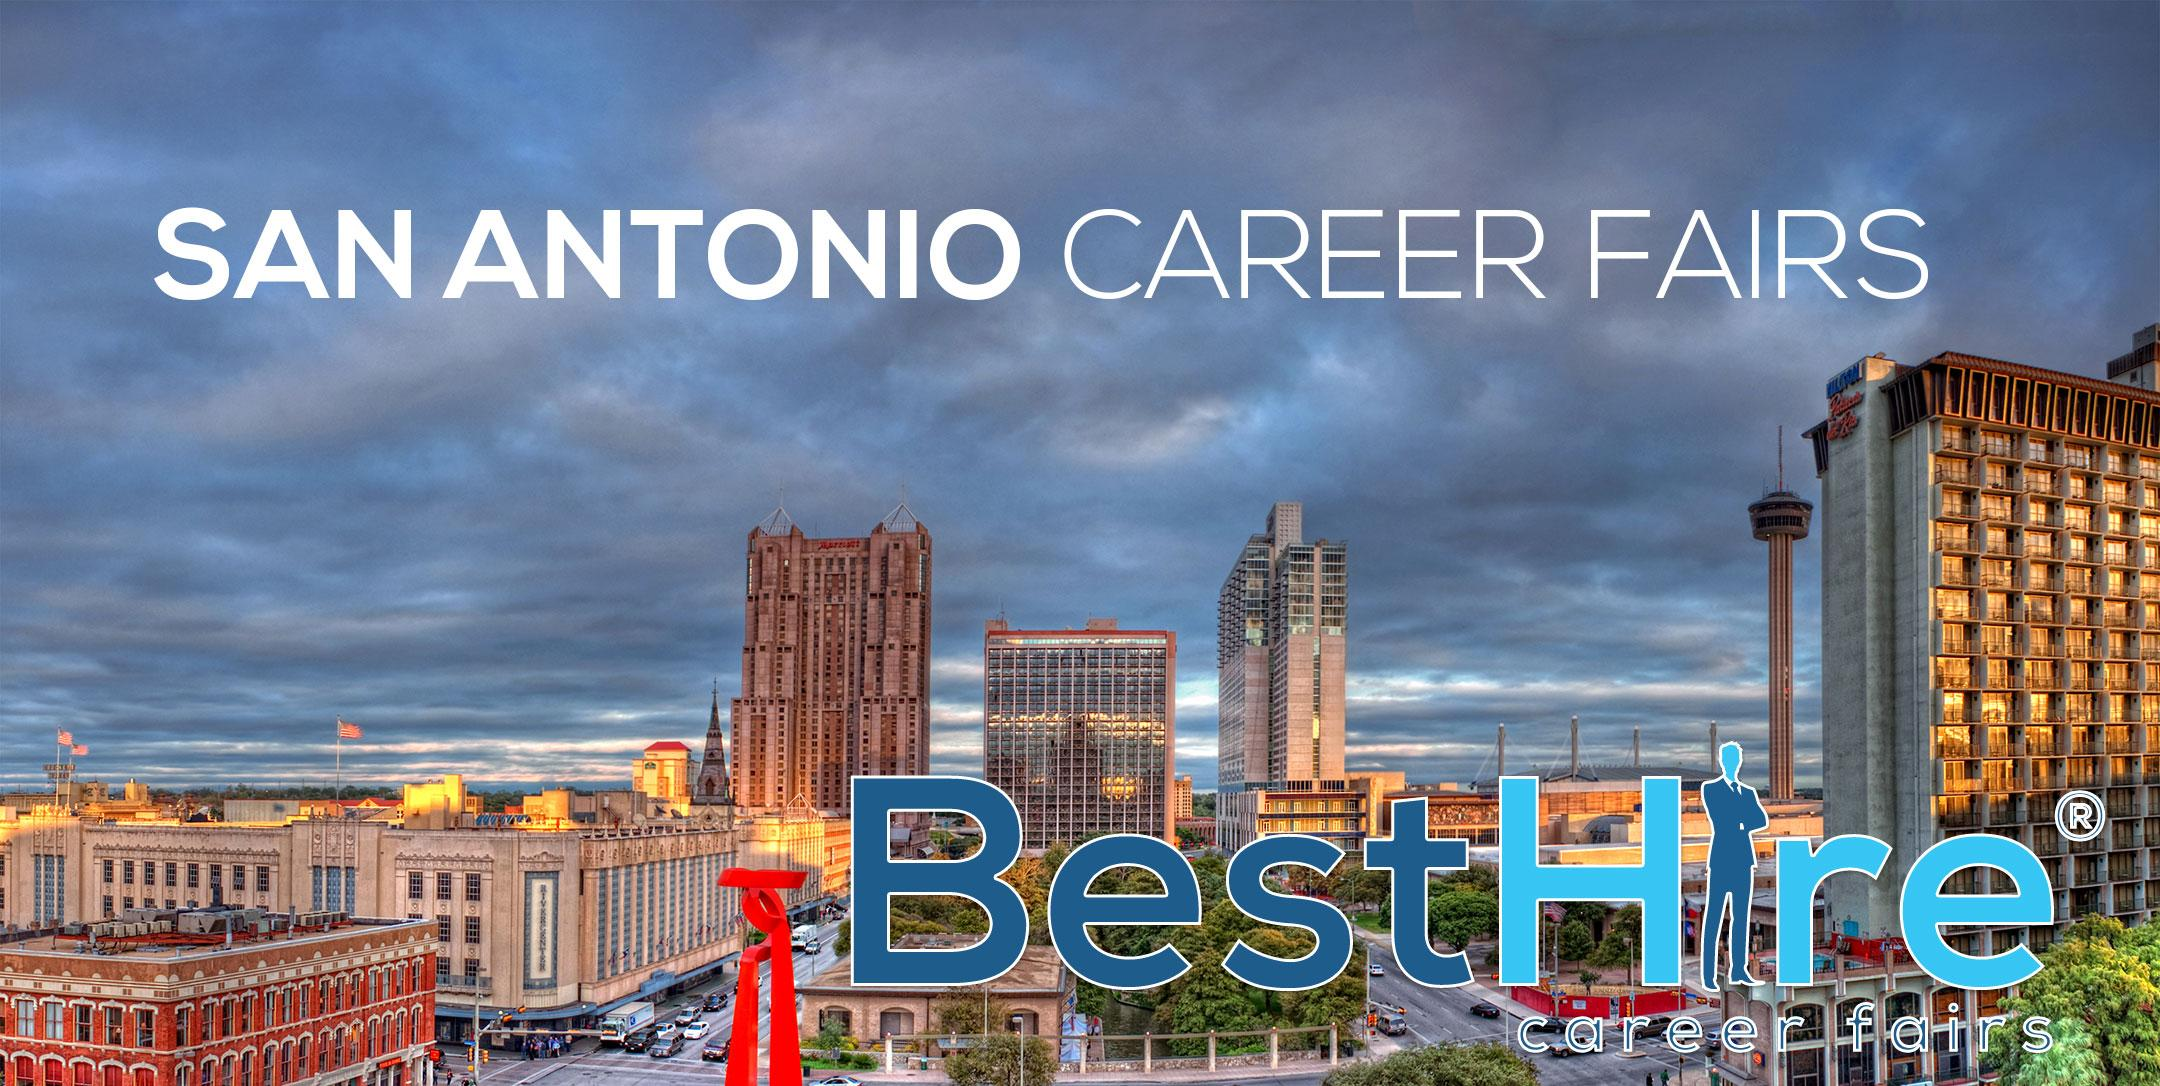 San Antonio Career Fair October 19, 2017 - Job Fairs & Hiring Events in San Antonio TX